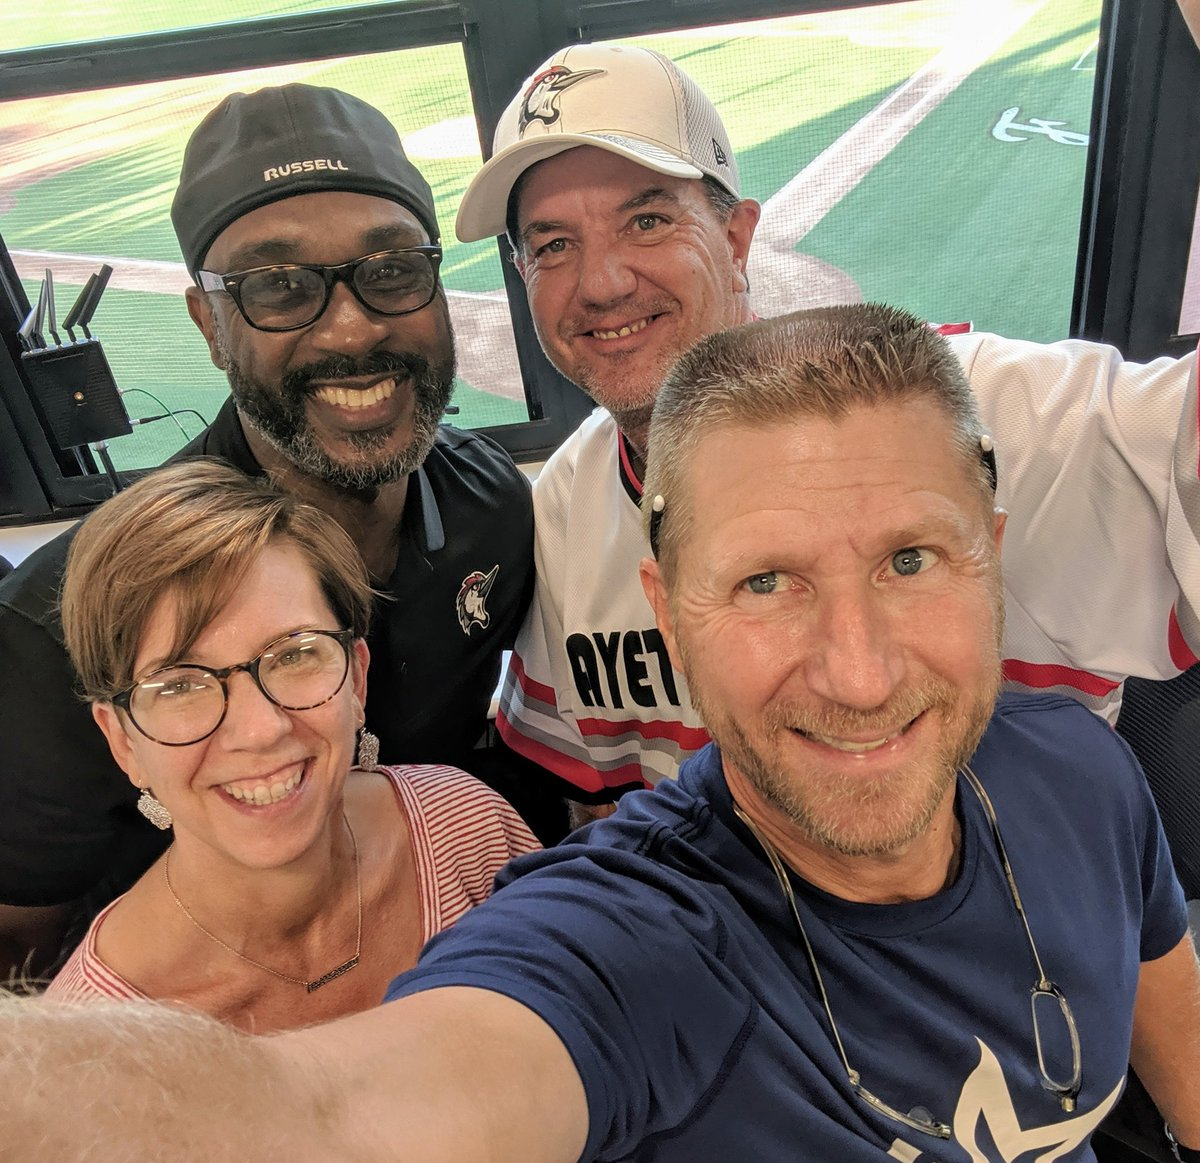 Thanks to Ray Thomas and Jeff Garner for the @WoodpeckersNC   press box tour. Amazing all that happens to make the fan experience awesome!  @eileen_hatch  @FTS_BASEBALL https://t.co/znZtBwTsdG